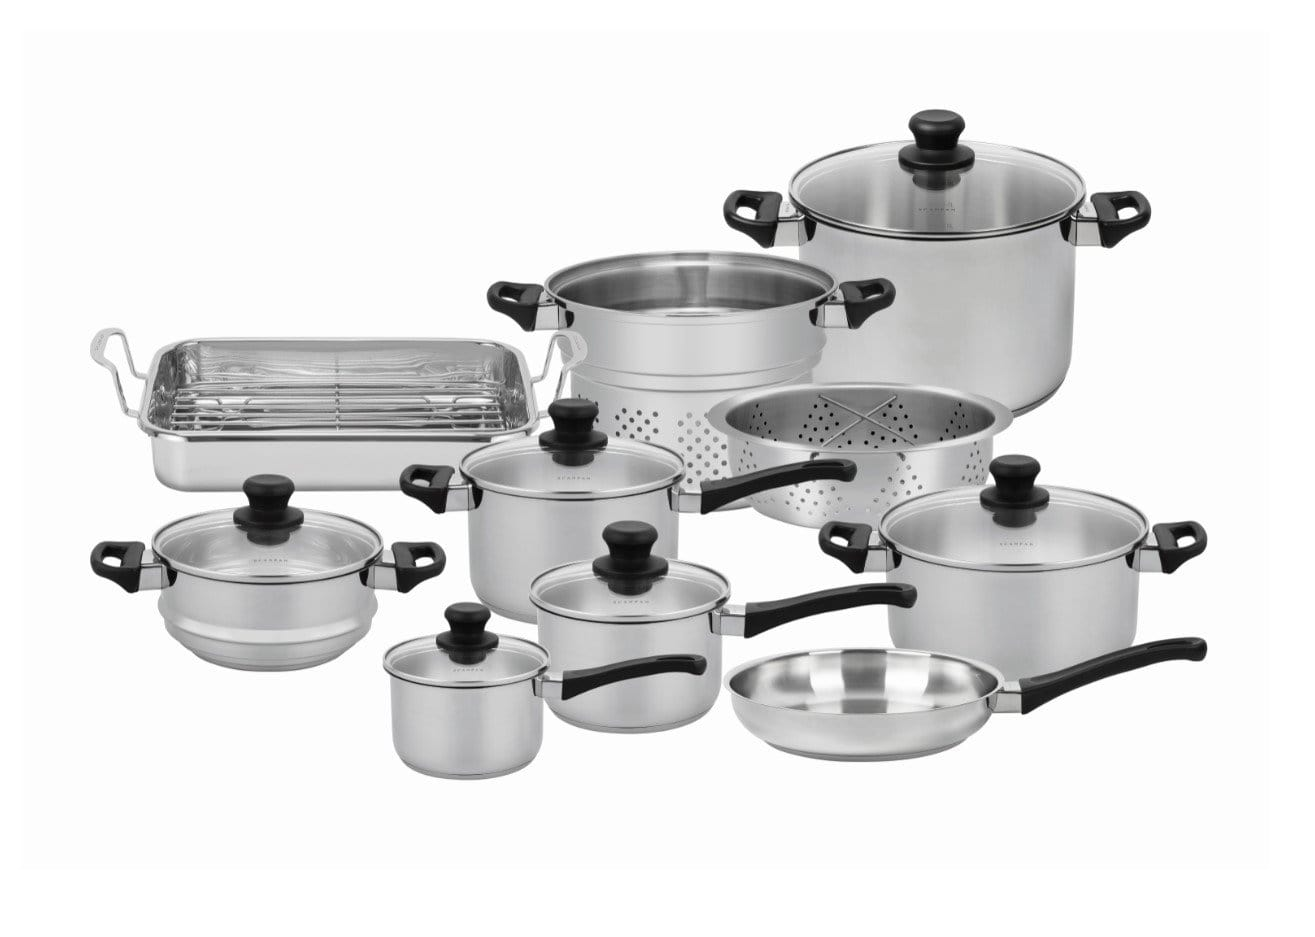 Scanpan Classic Inox 10 Piece Cookware Set - Bronx Homewares